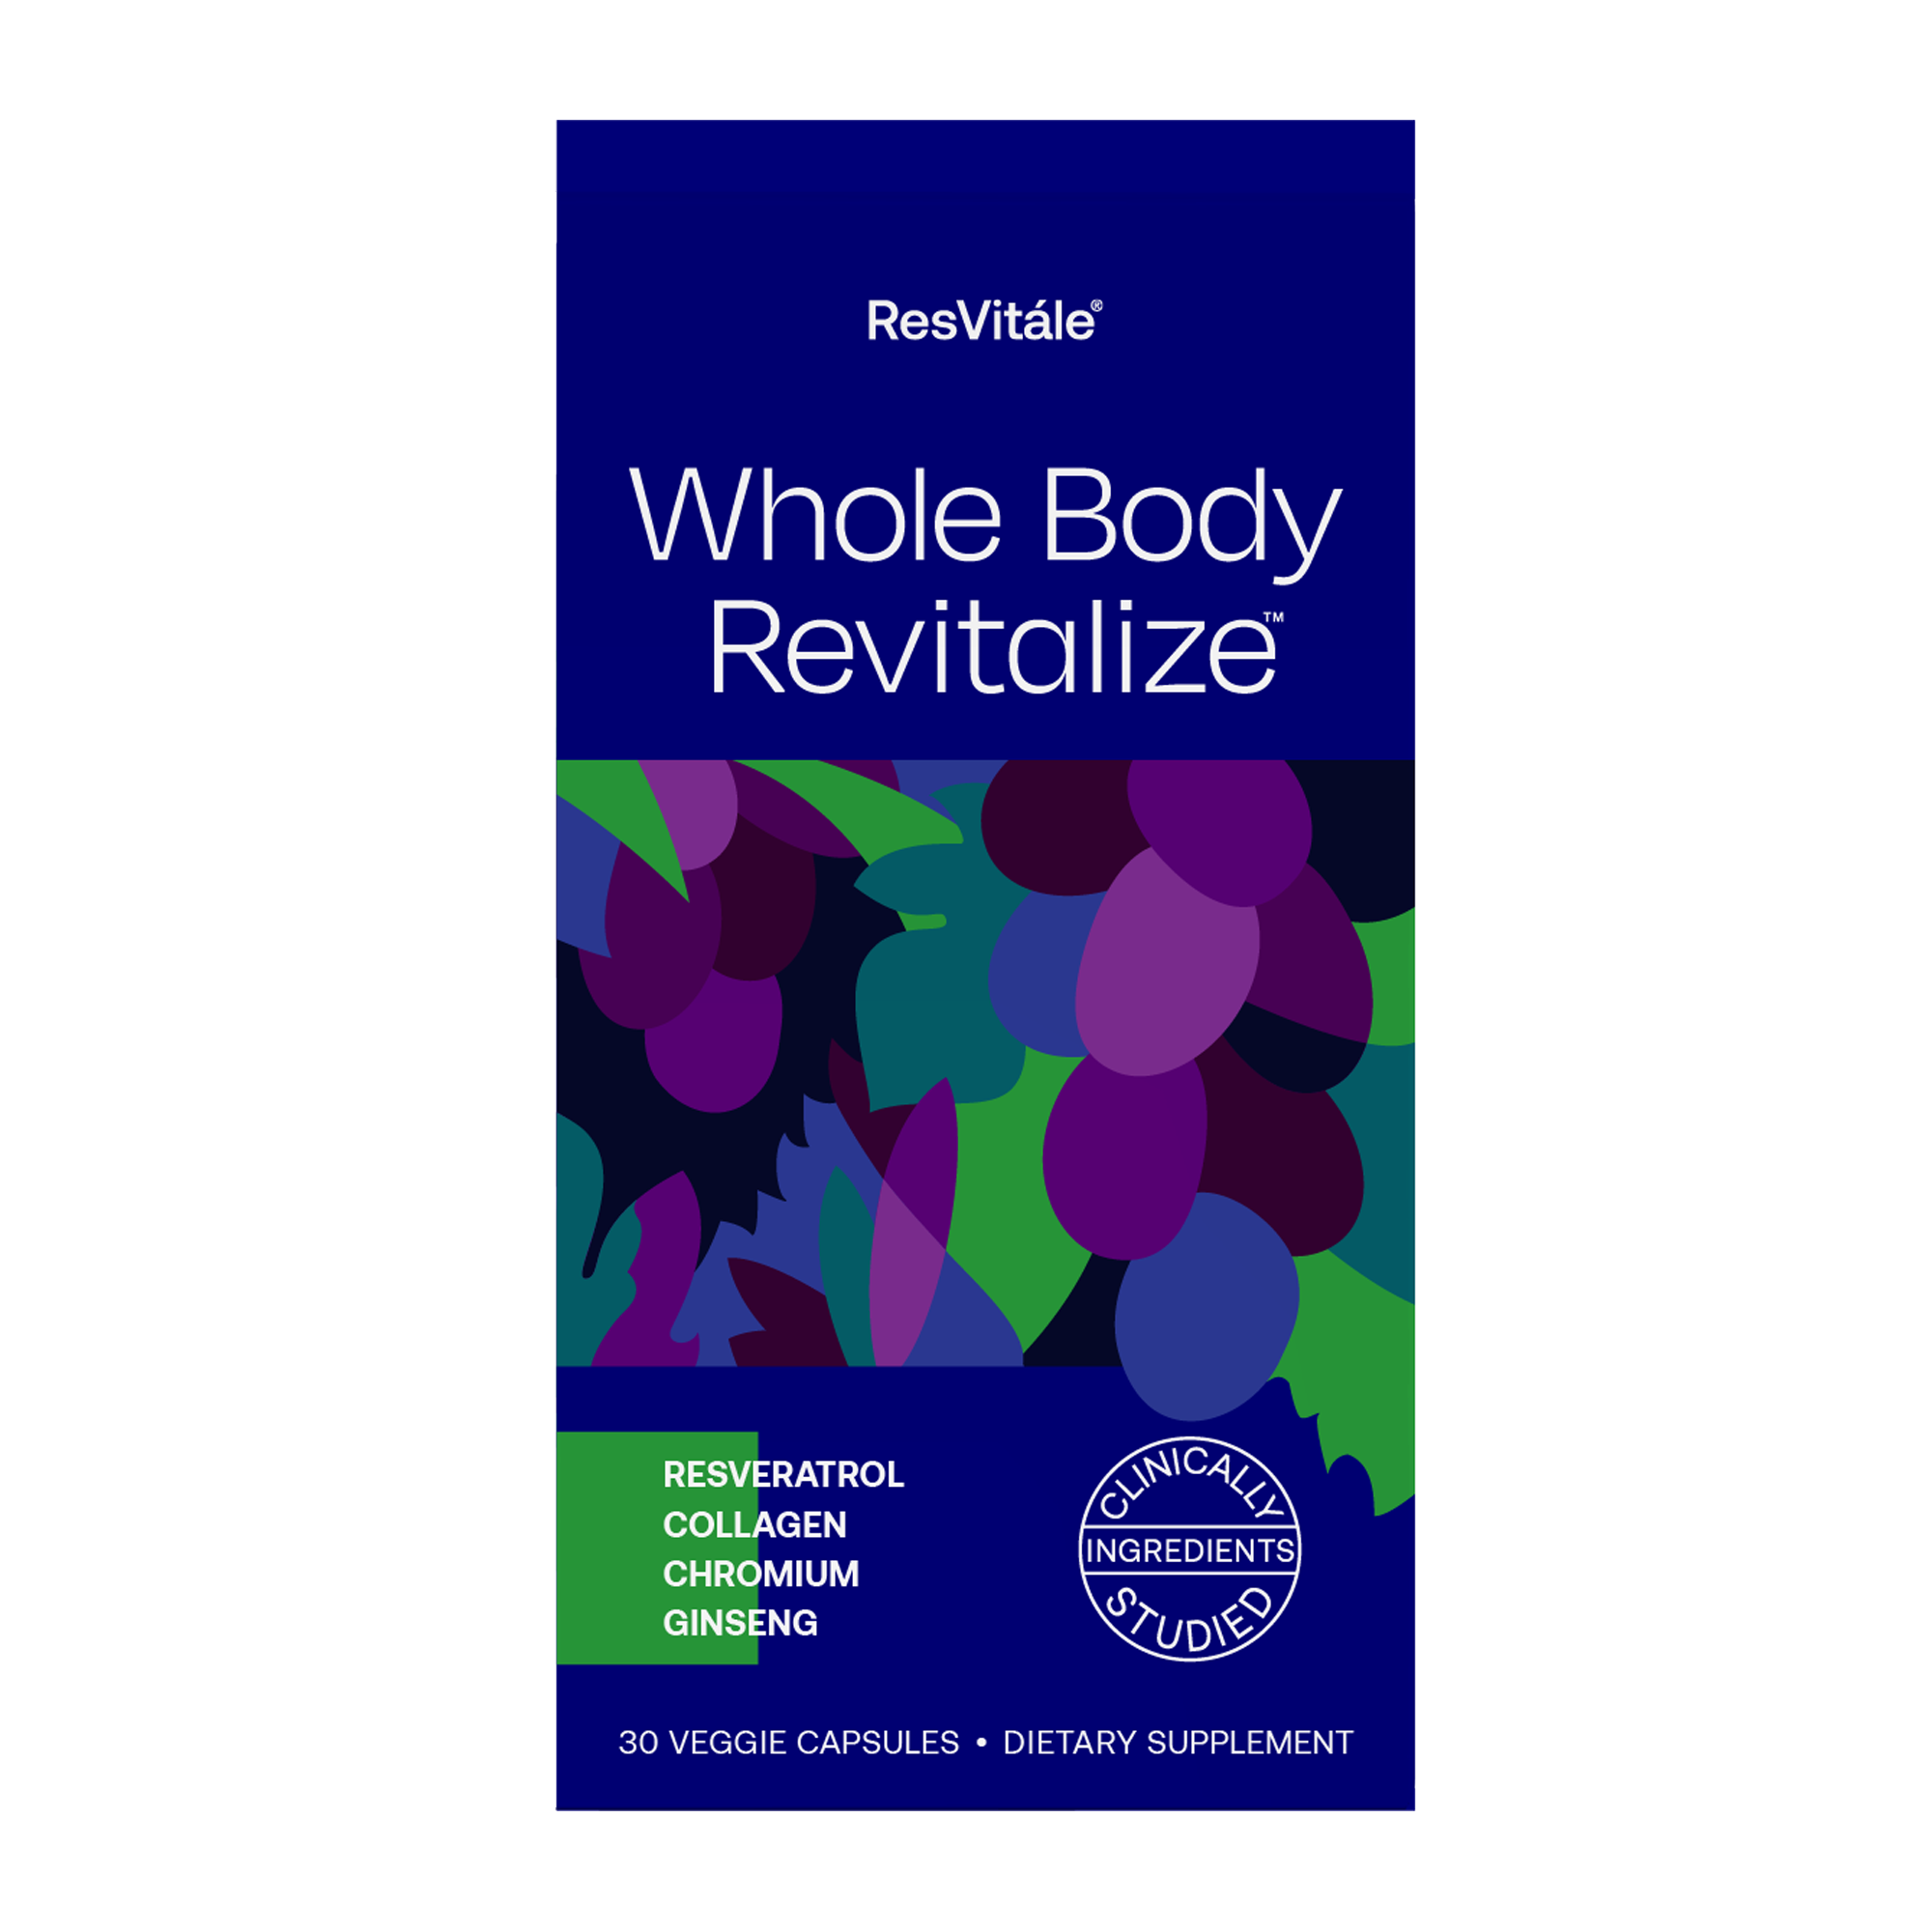 Experience inner and outer body wellness with our powerful formula that contains clinically-tested ingredients that promote overall vitality.